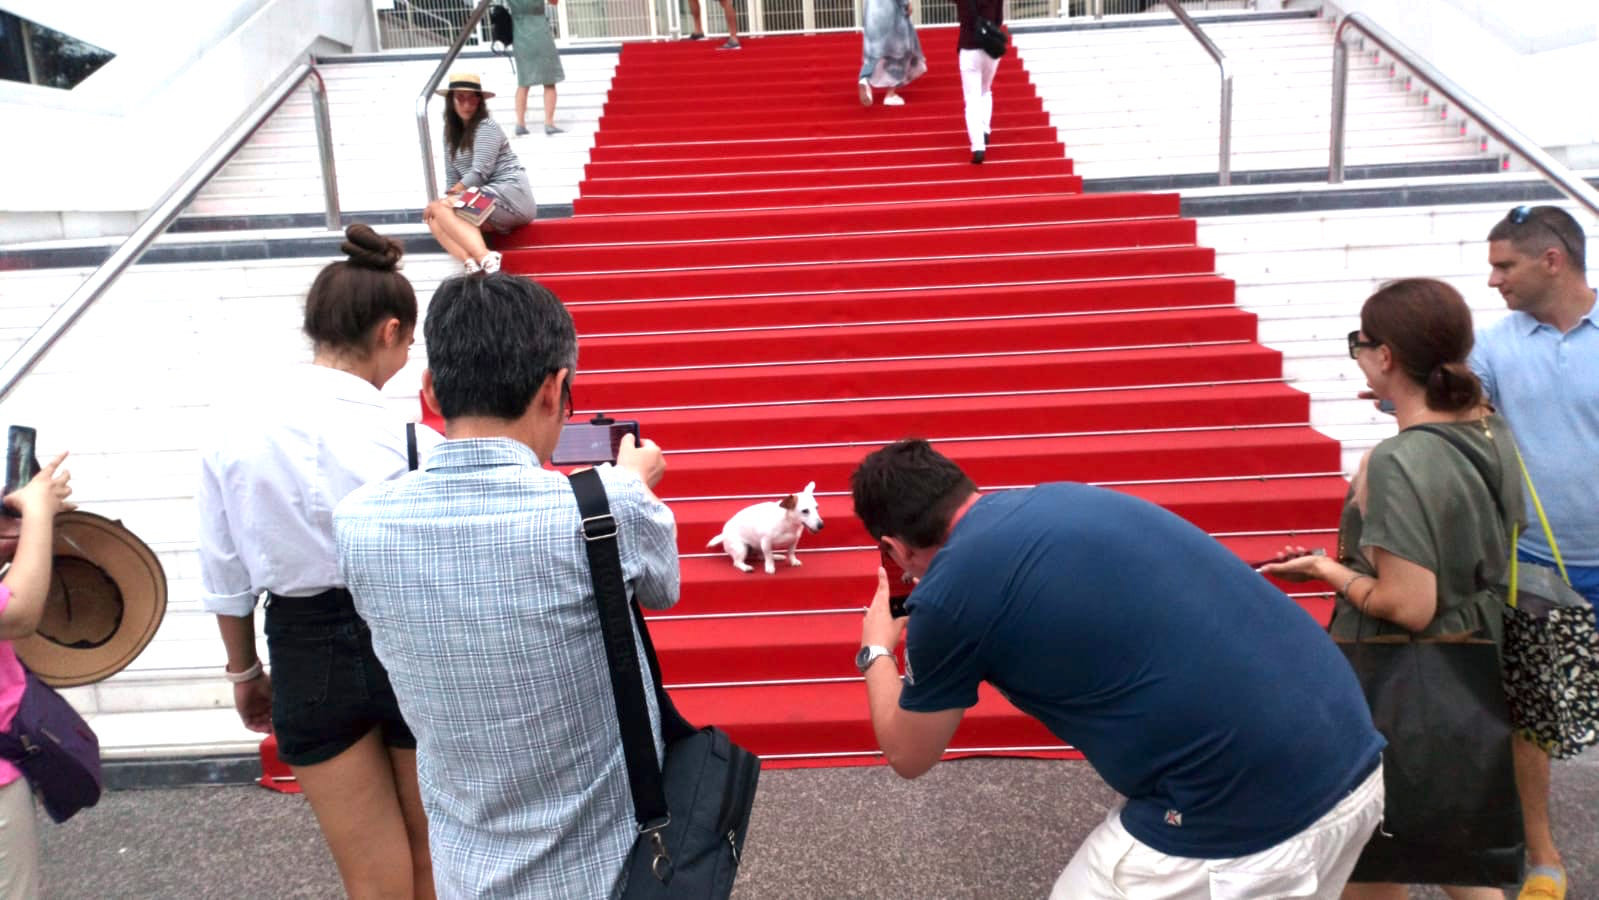 Red Carpet in Cannes a little Fashionista